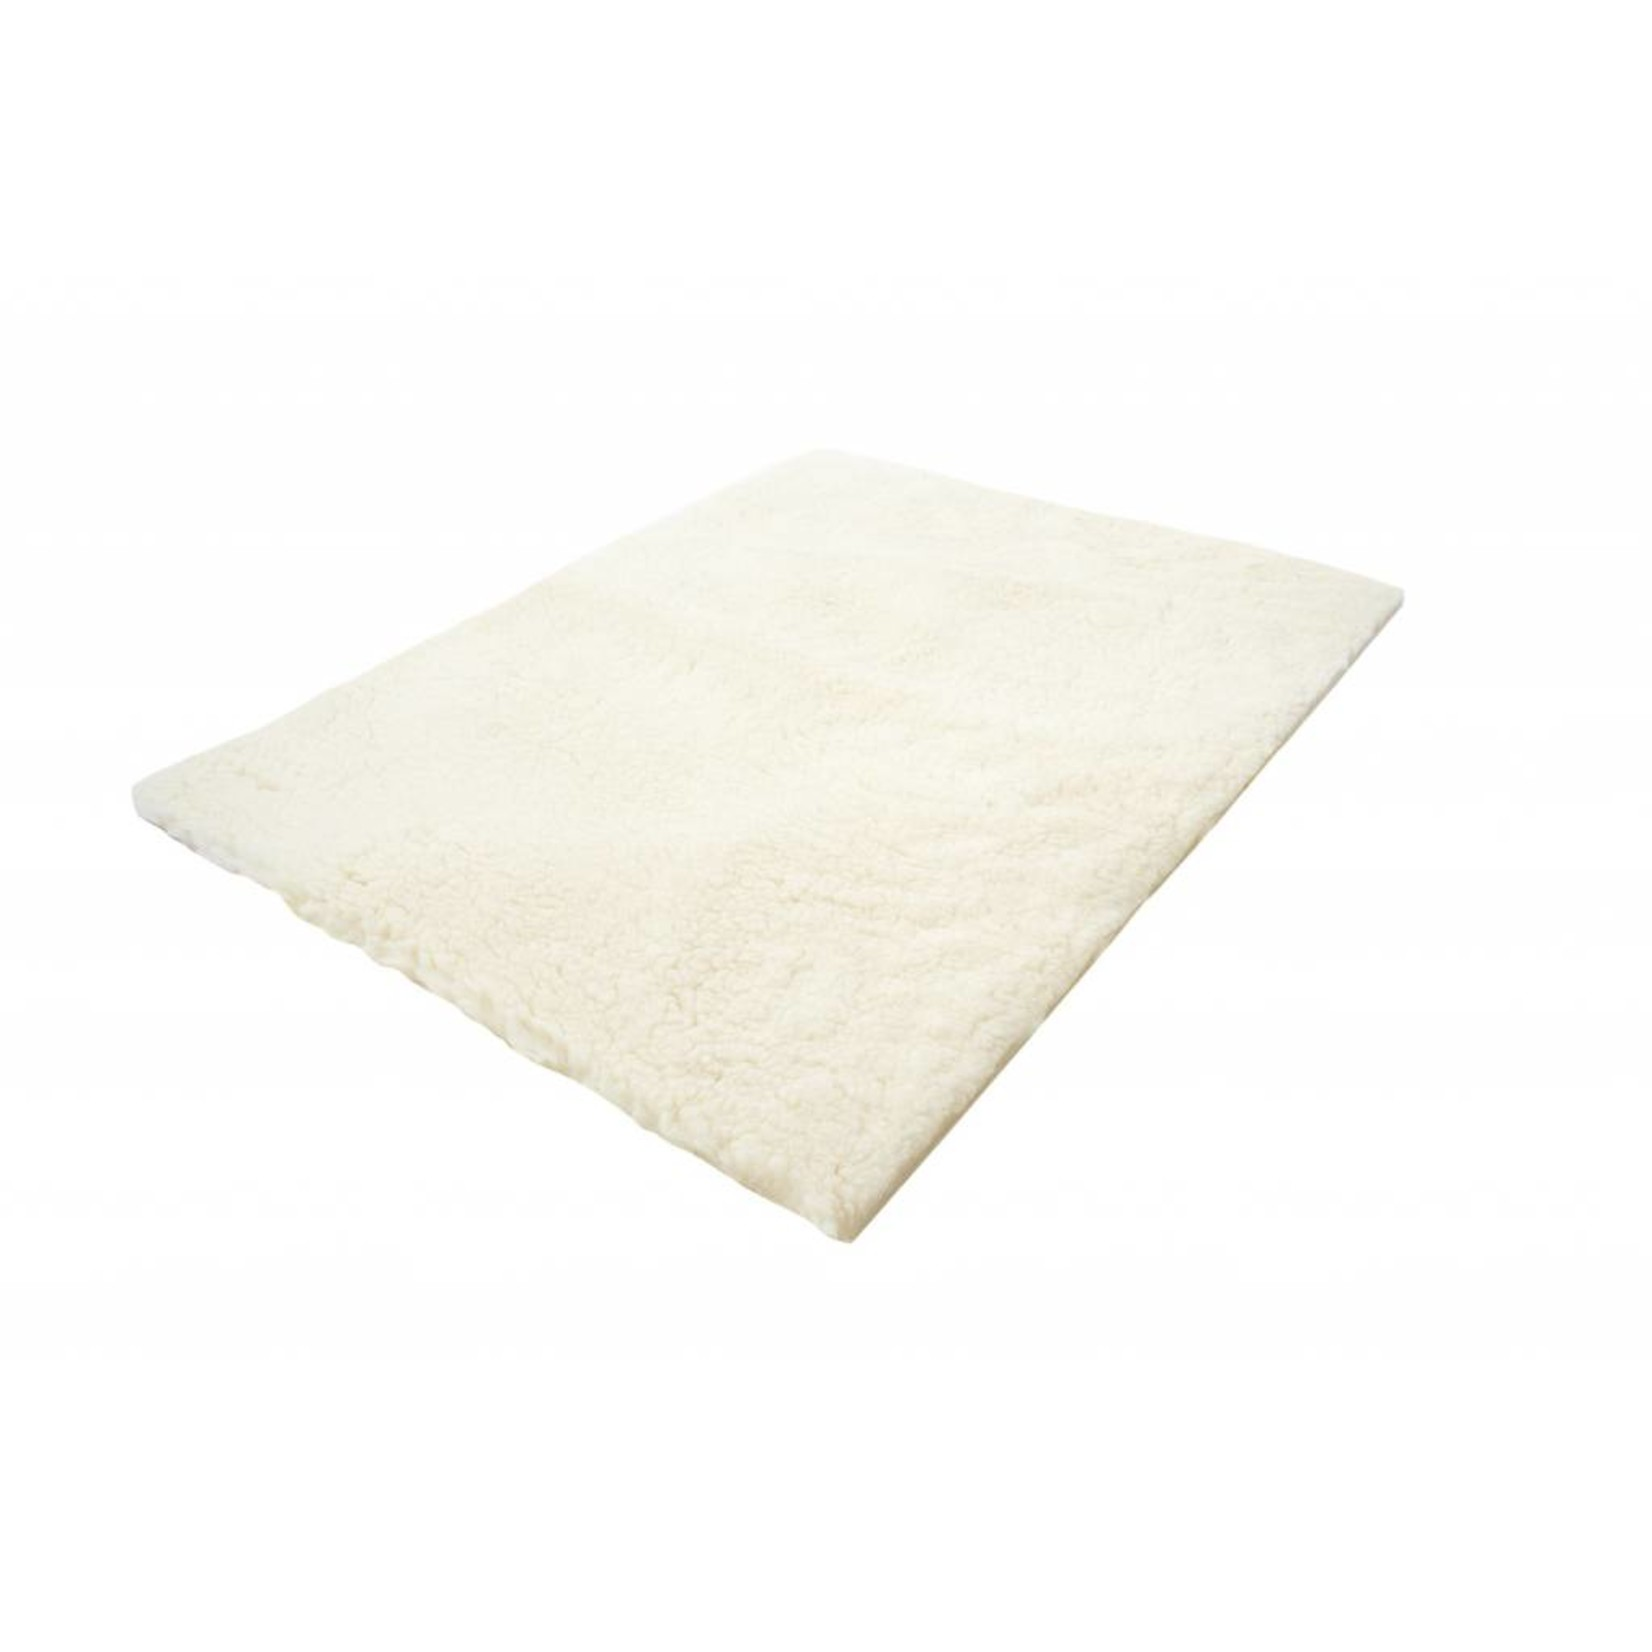 Essential Medical SHEEPETTE SYNTH LAMBSKIN 30x60 (5)